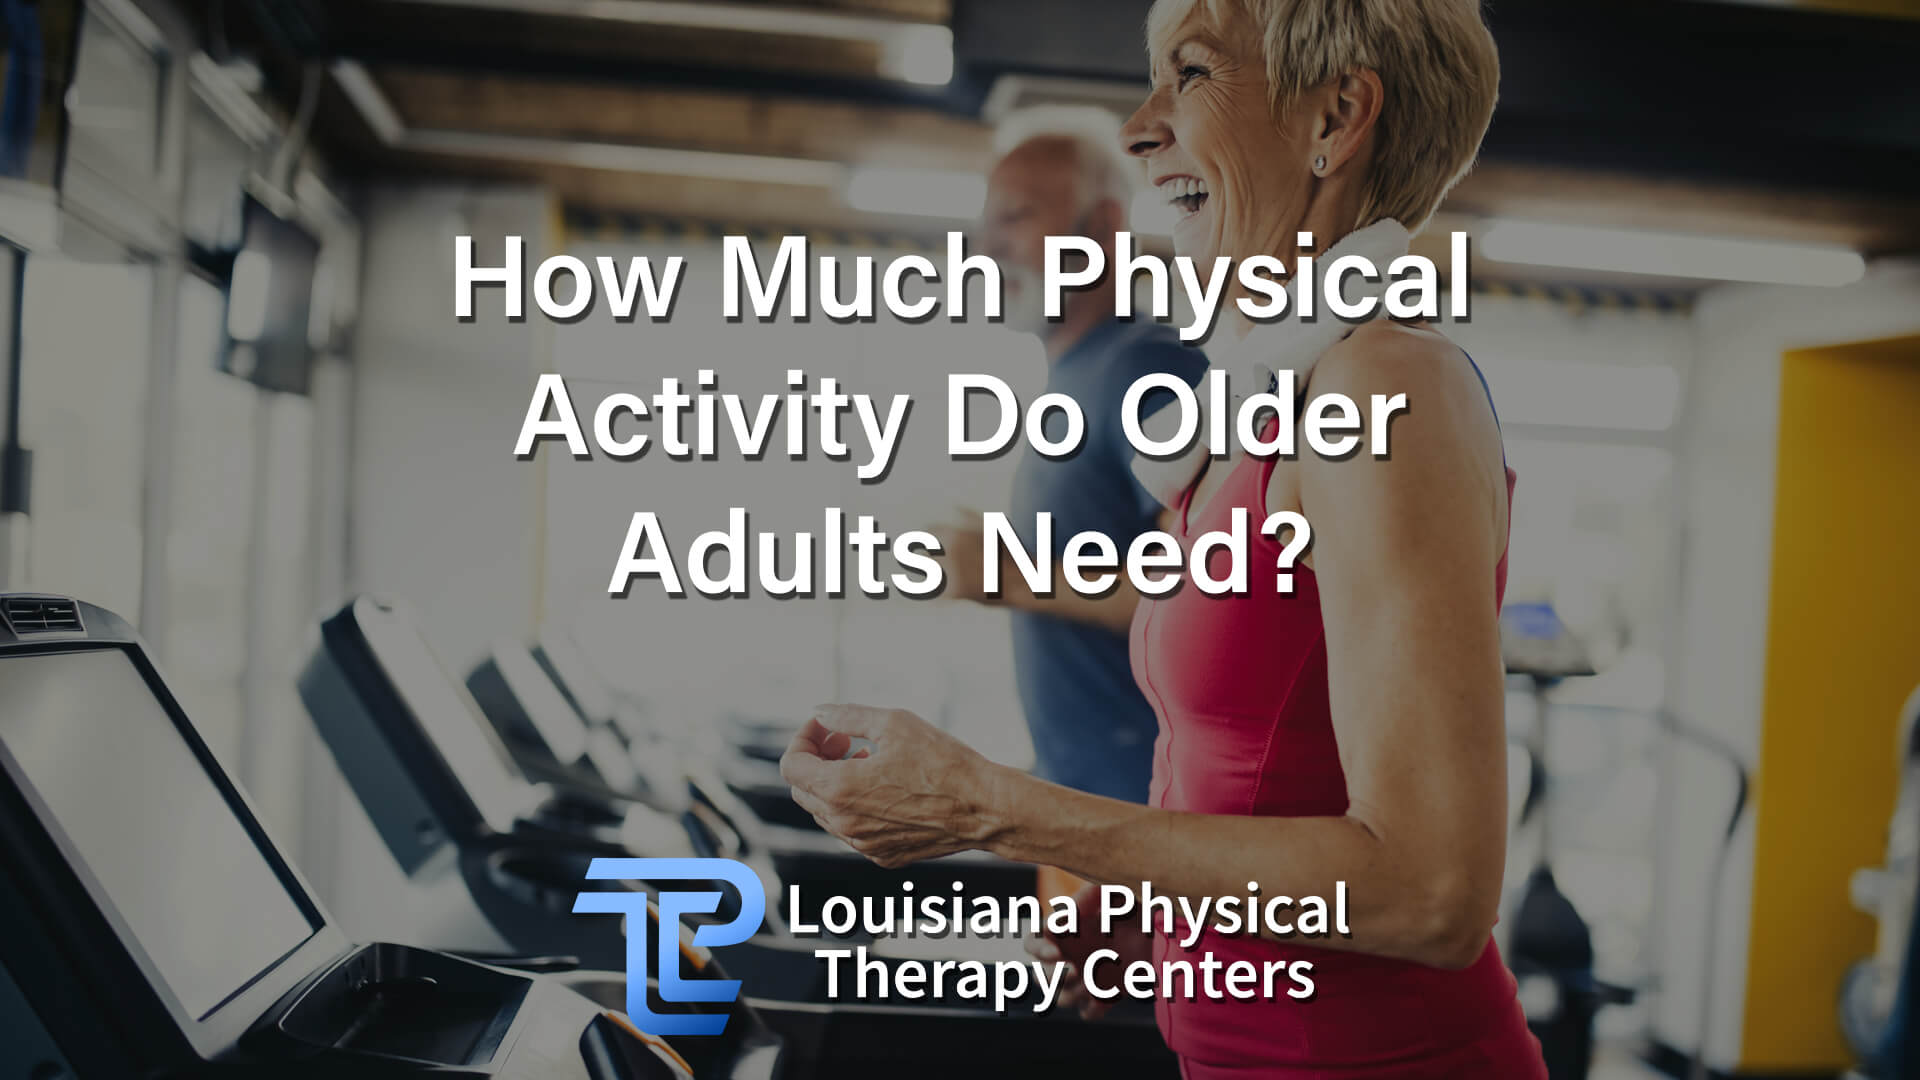 How Much Physical Activity Do Older Adults Need